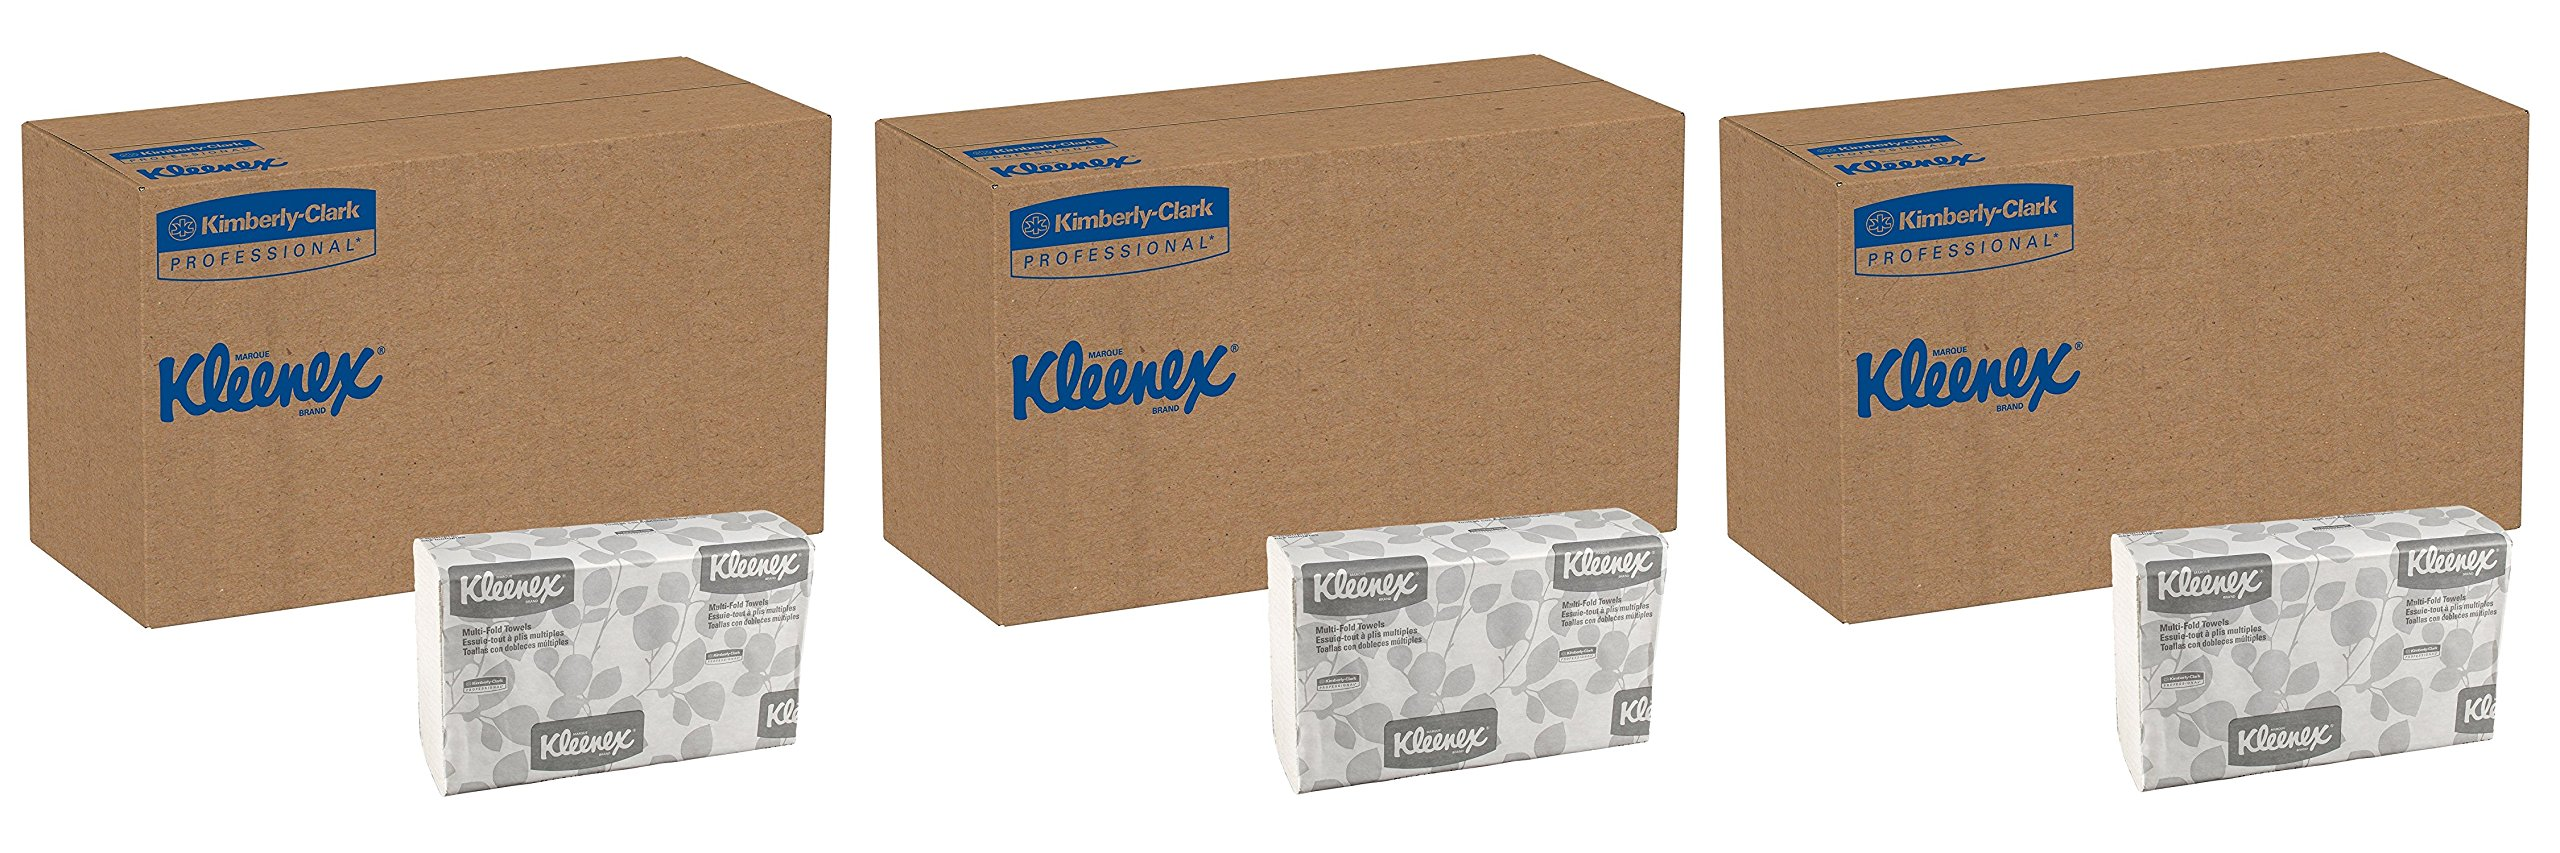 Kleenex 02046 Multi-Fold Paper Towels, Convenience, 9 1/5x9 2/5, White, 150 Per Pack (Case of 8 Packs) (3 CASES)